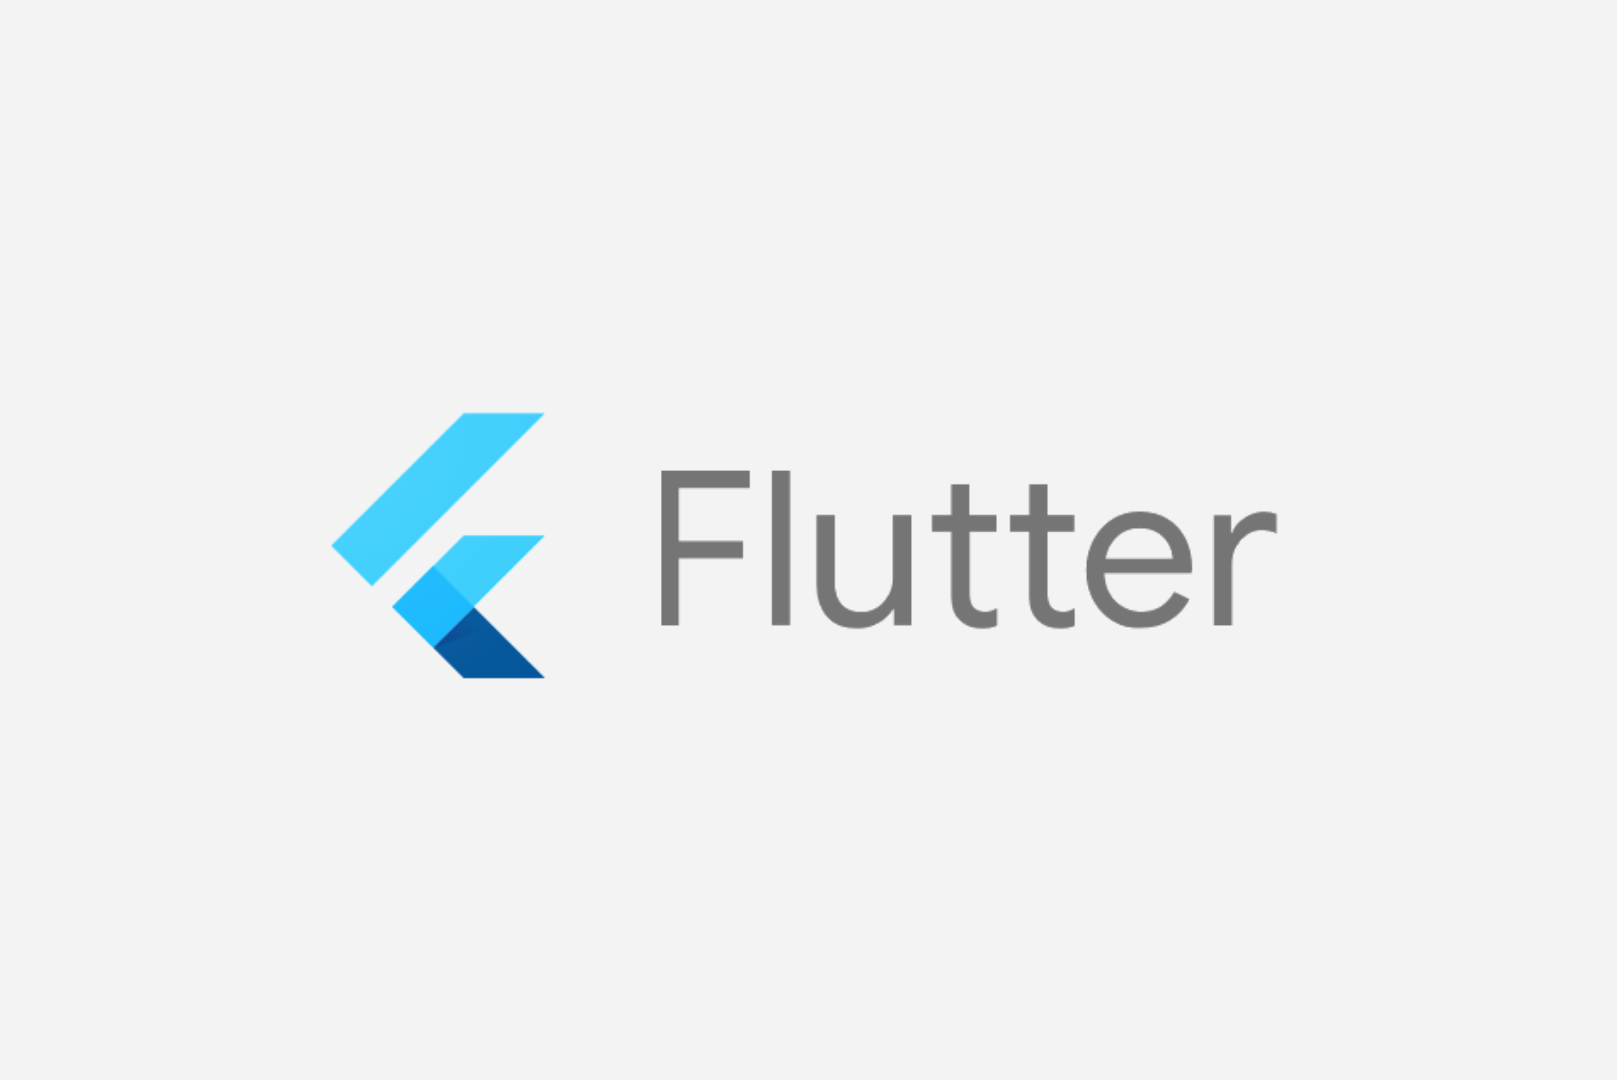 Flutter for Android